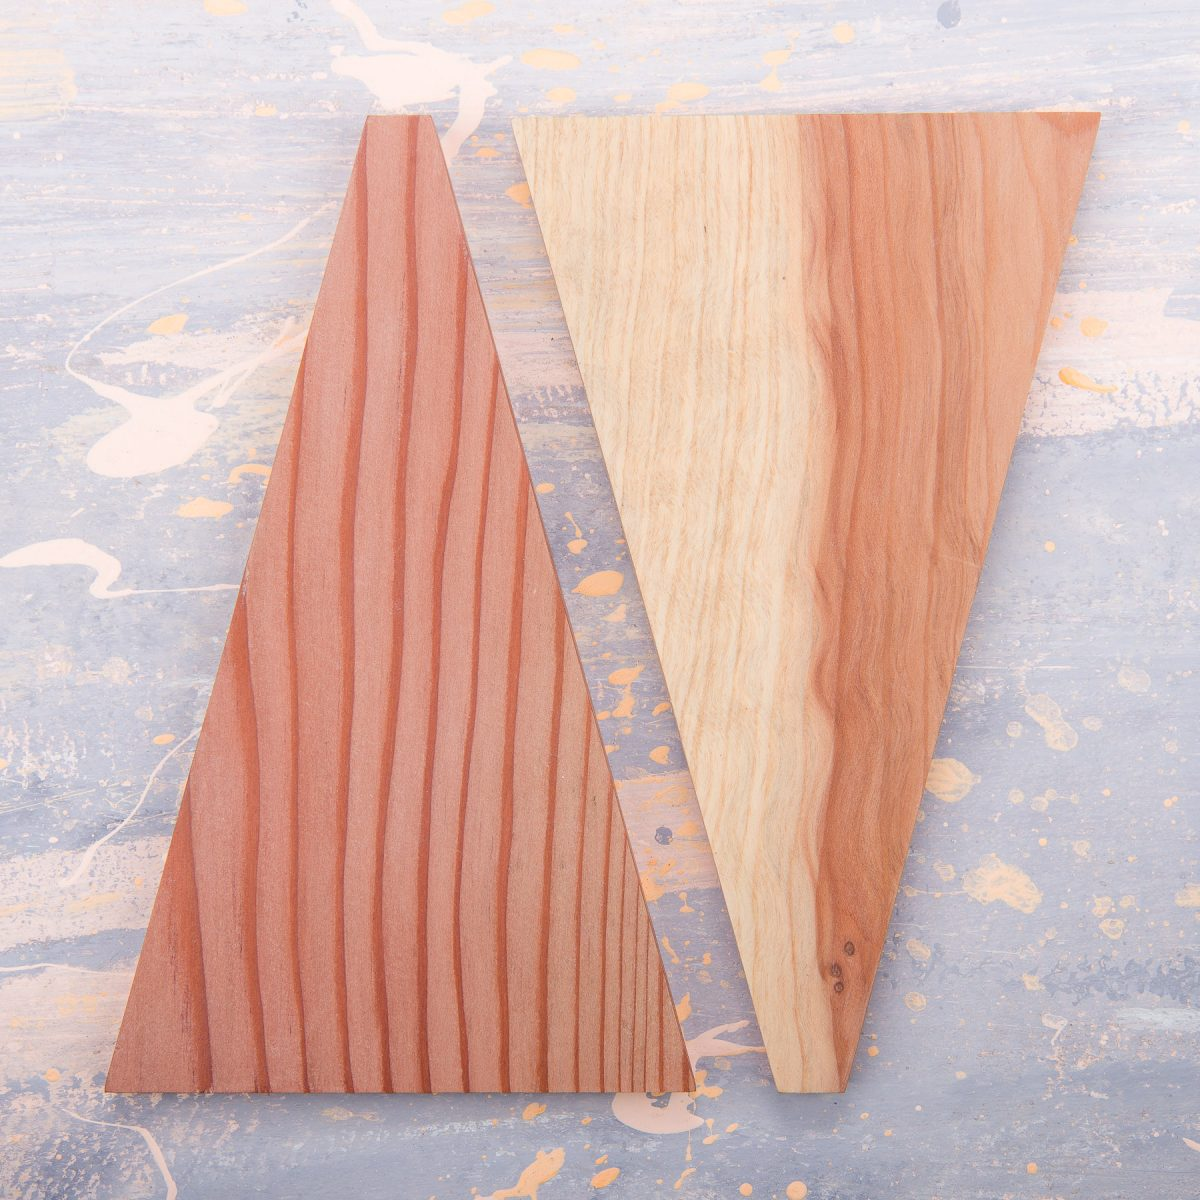 Jan Hendzel Studio samples wellingtonia giant sequoia redwood